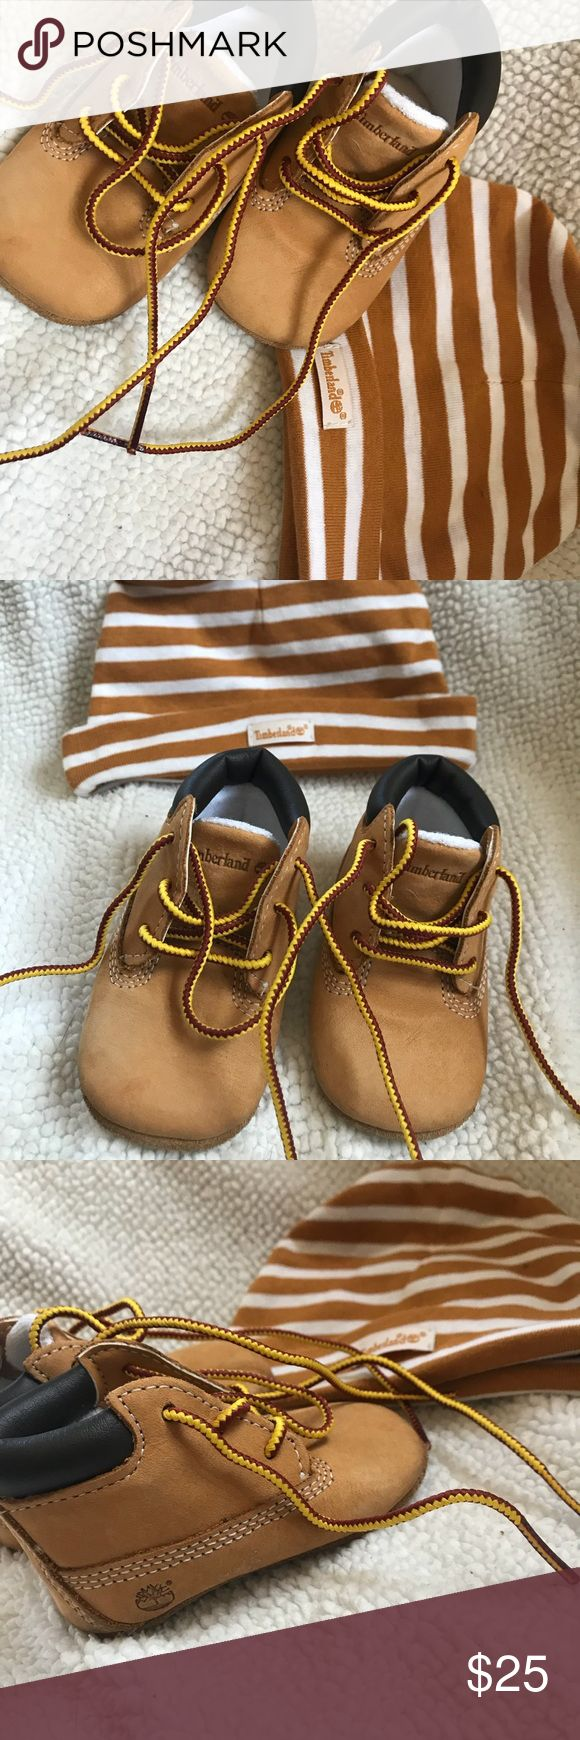 Timberland boots like new, worn maybe twice. size 1 infant timberland boots. comes with beanie. Timberland Shoes Baby & Walker